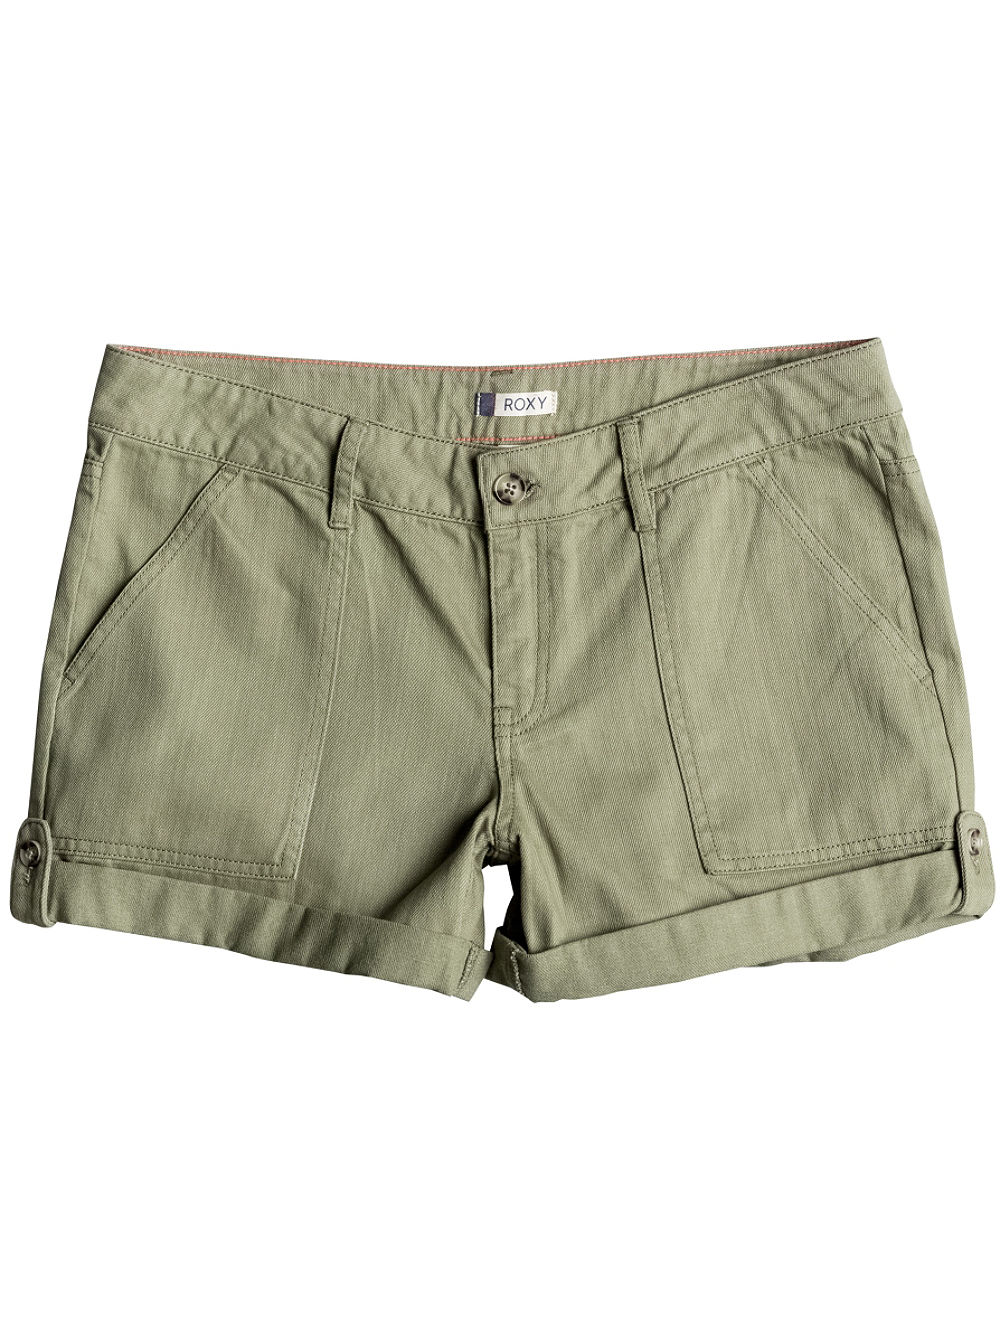 roxy-memory-holidays-shorts